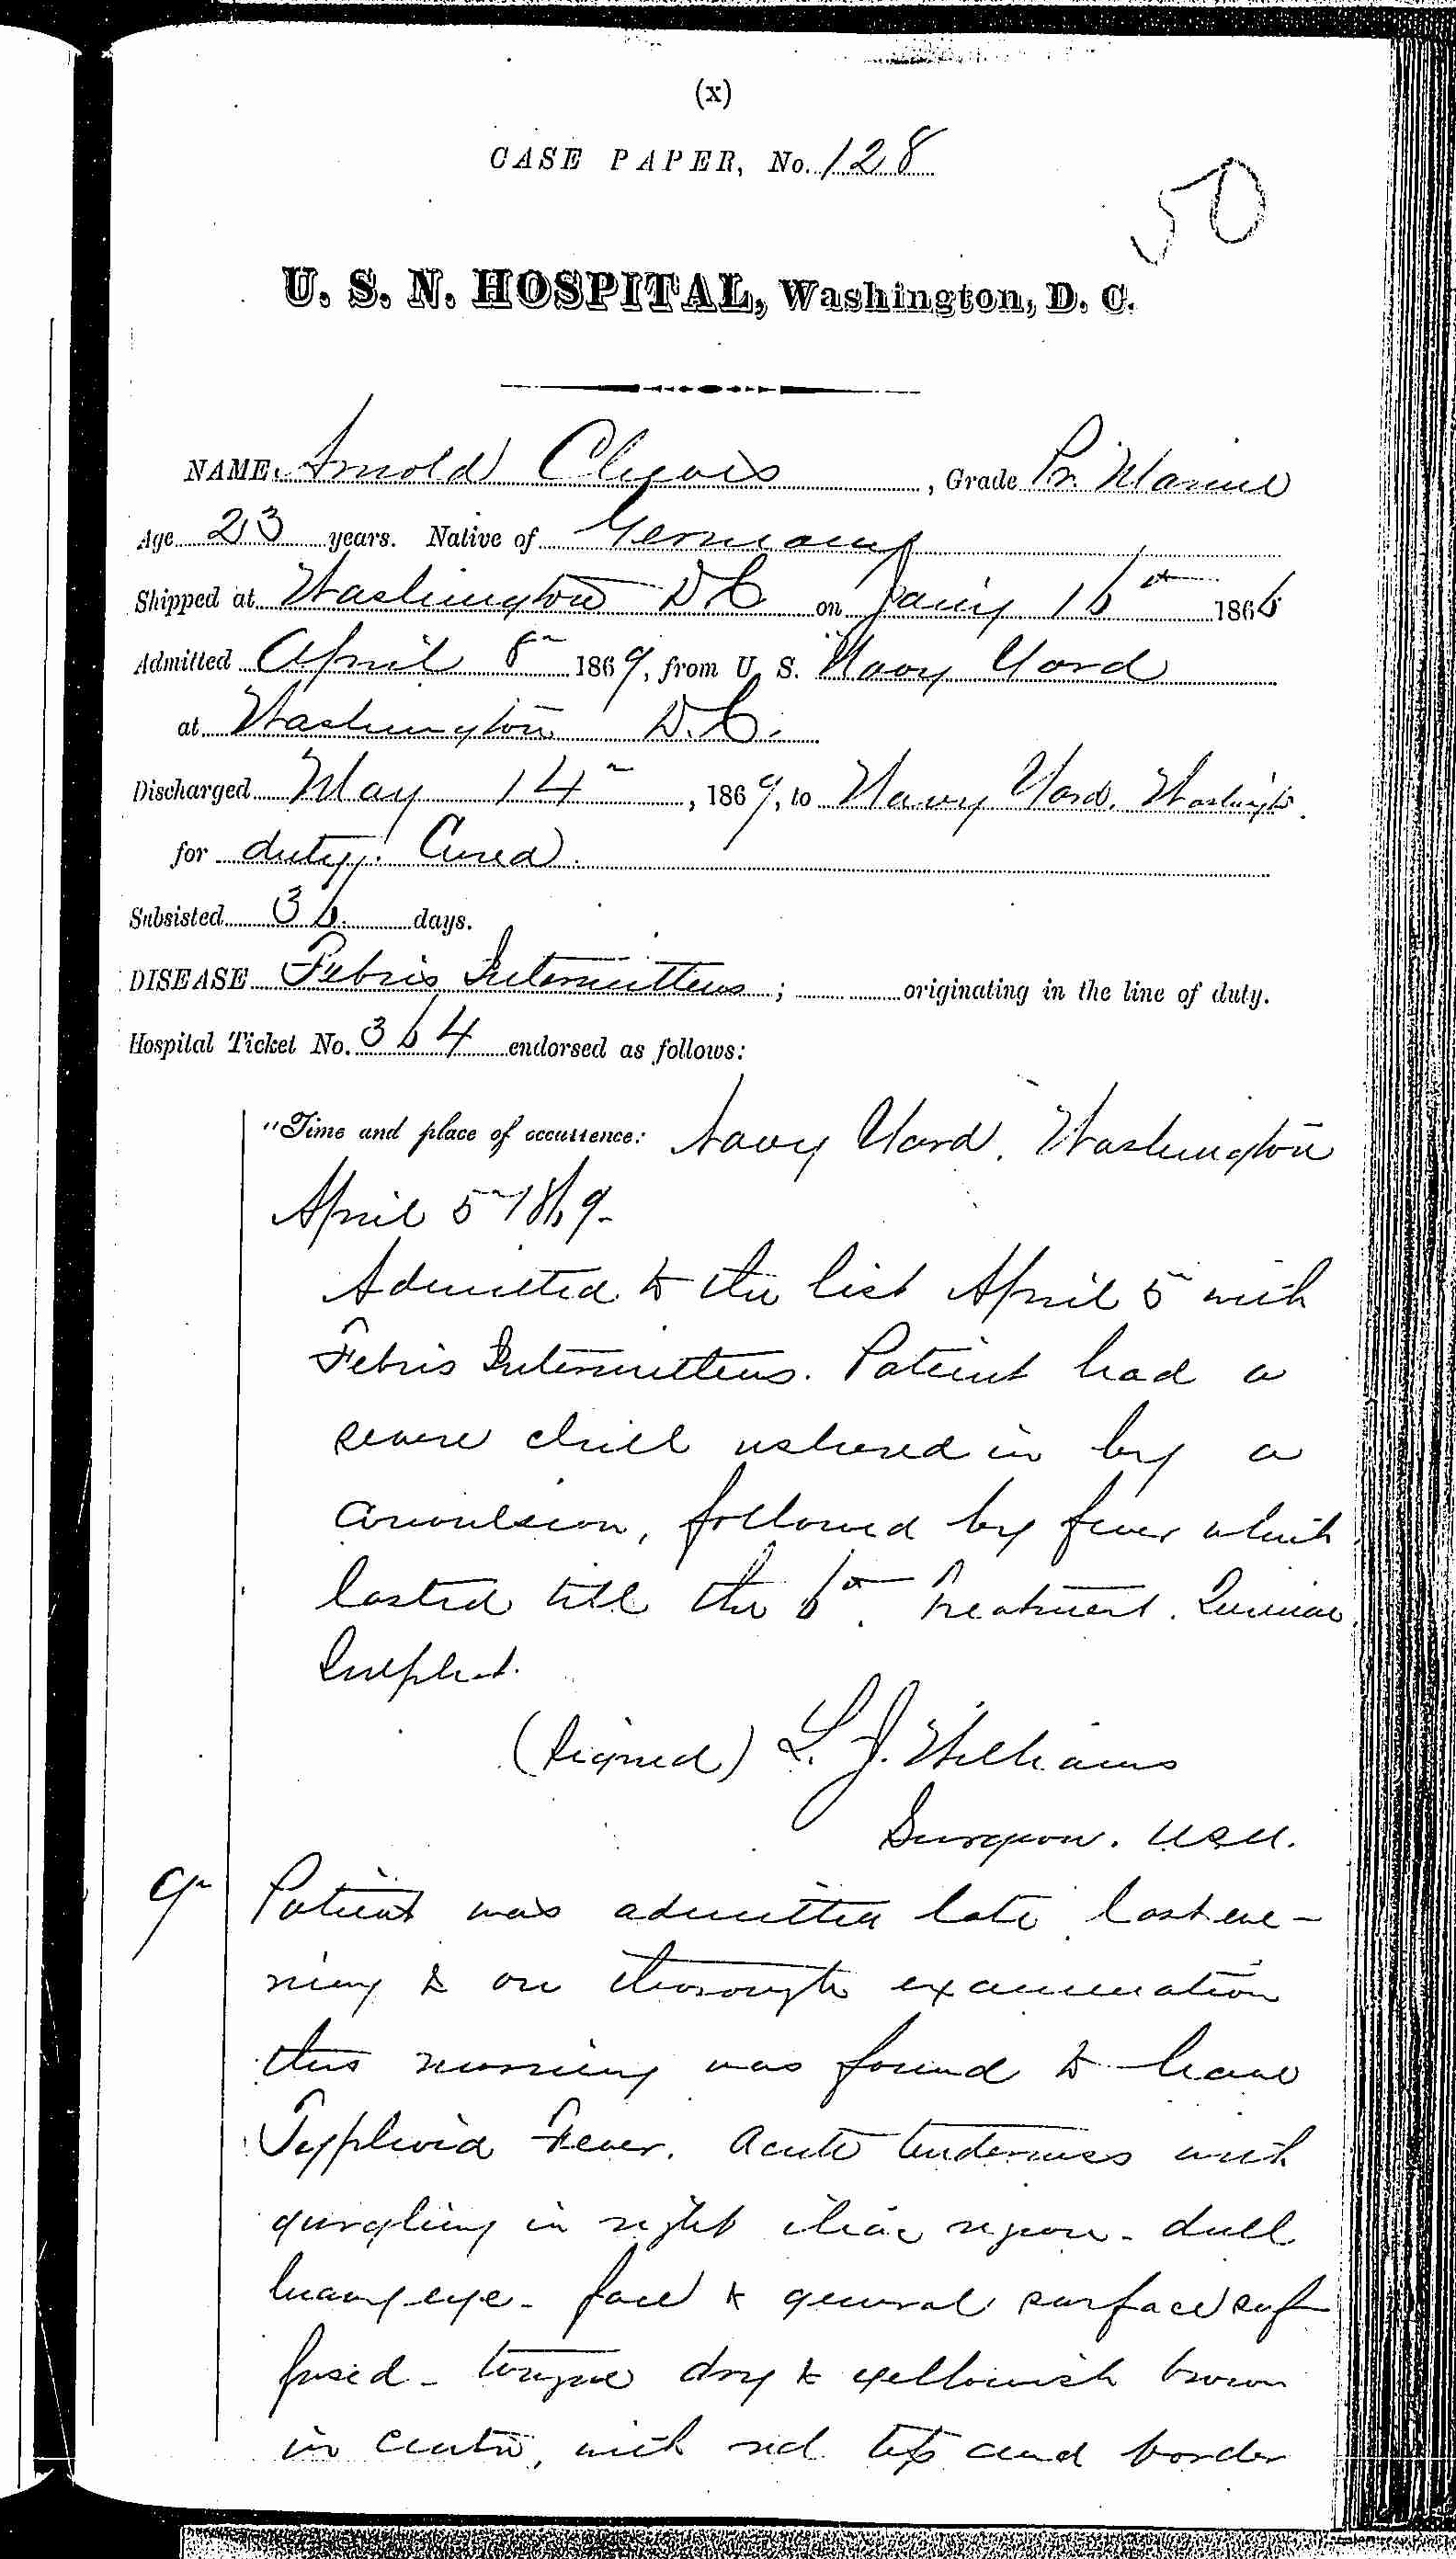 Entry for Arnold Cleeves (page 1 of 4) in the log Hospital Tickets and Case Papers - Naval Hospital - Washington, D.C. - 1868-69